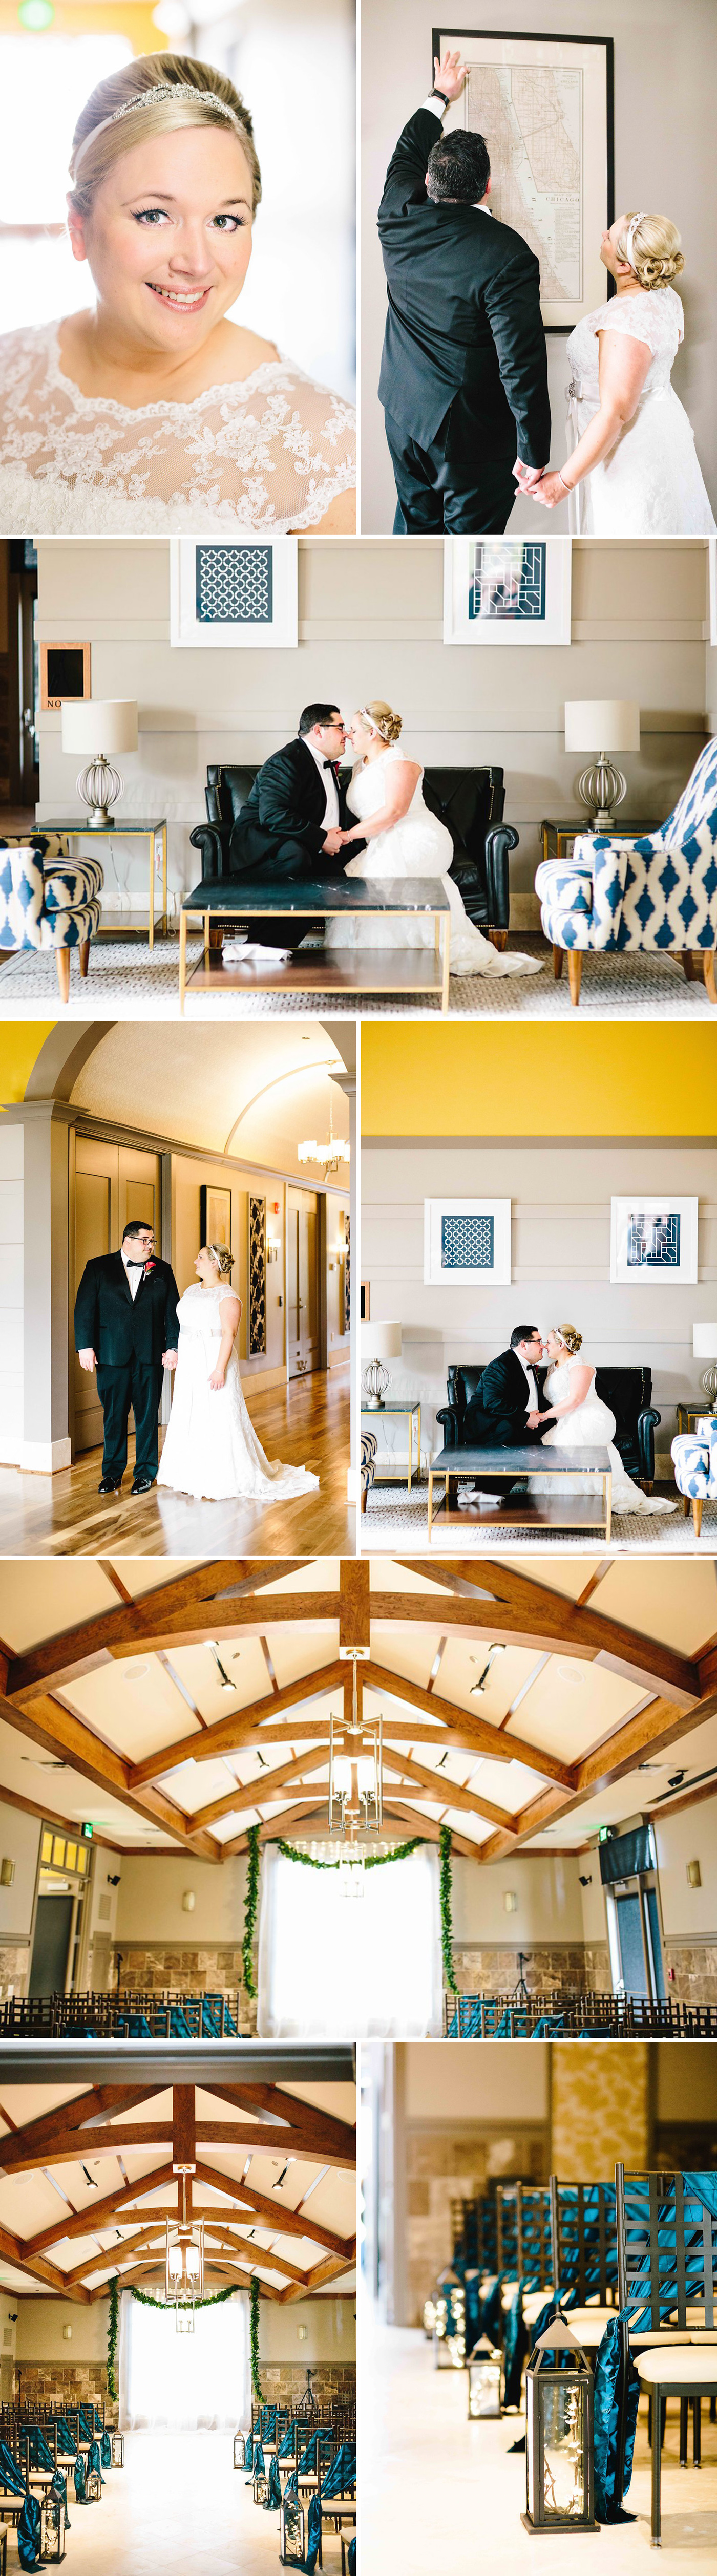 chicago-fine-art-wedding-photography-virgilio6